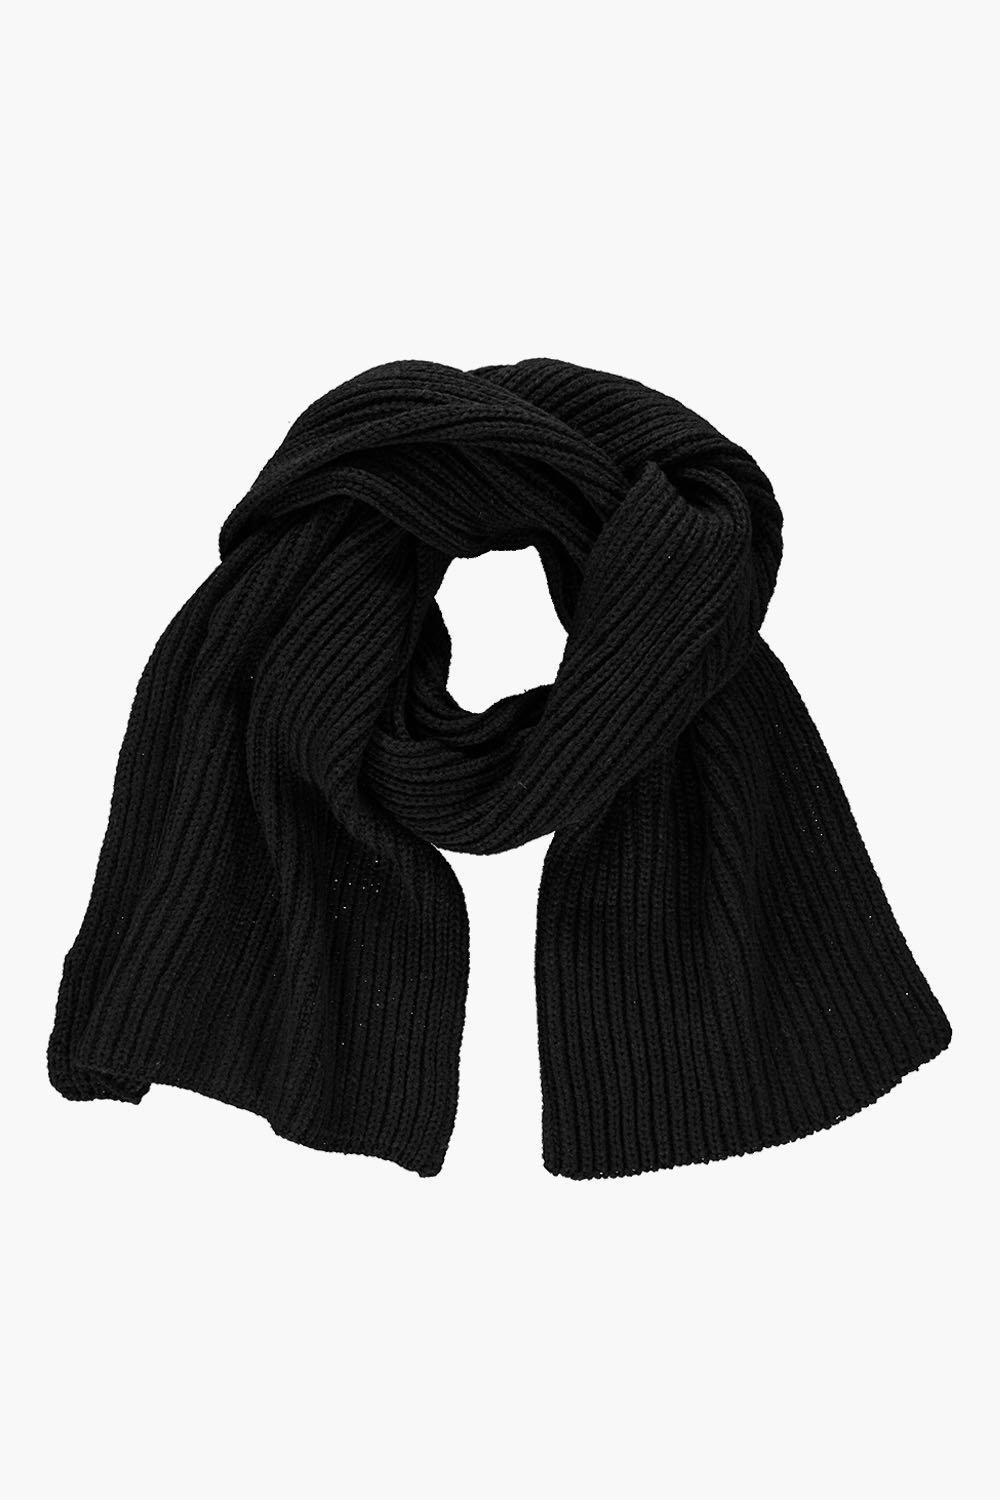 Ribbed Knit Oversize Scarf Black - predominant colour: black; occasions: casual; type of pattern: standard; style: regular; size: standard; material: fabric; pattern: plain; wardrobe: basic; season: a/w 2016